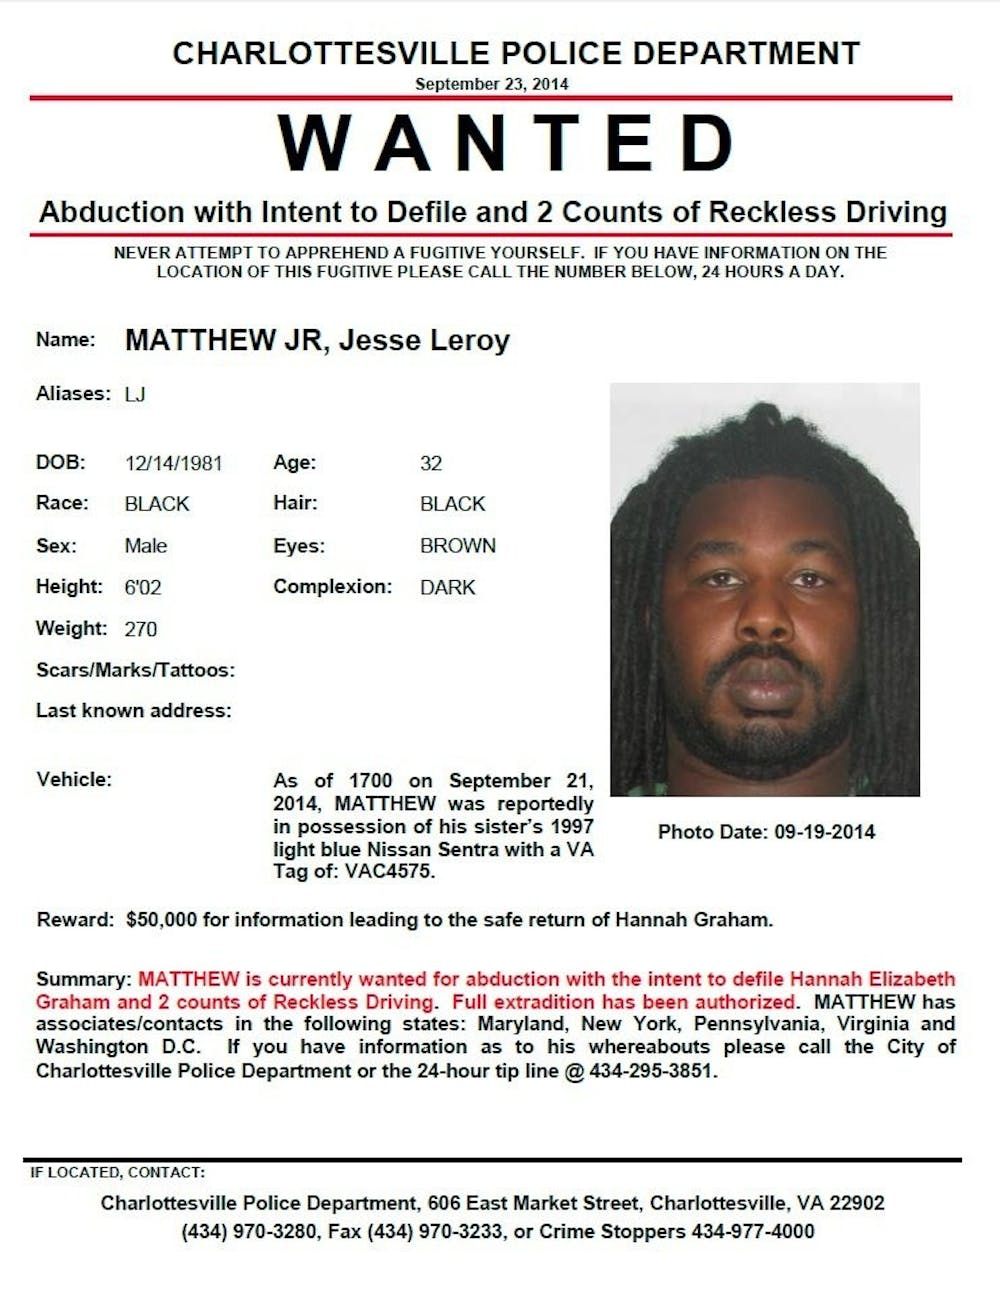 The wanted poster for Jesse Leroy Matthew, Jr, the person of interest in the missing UVA student case.